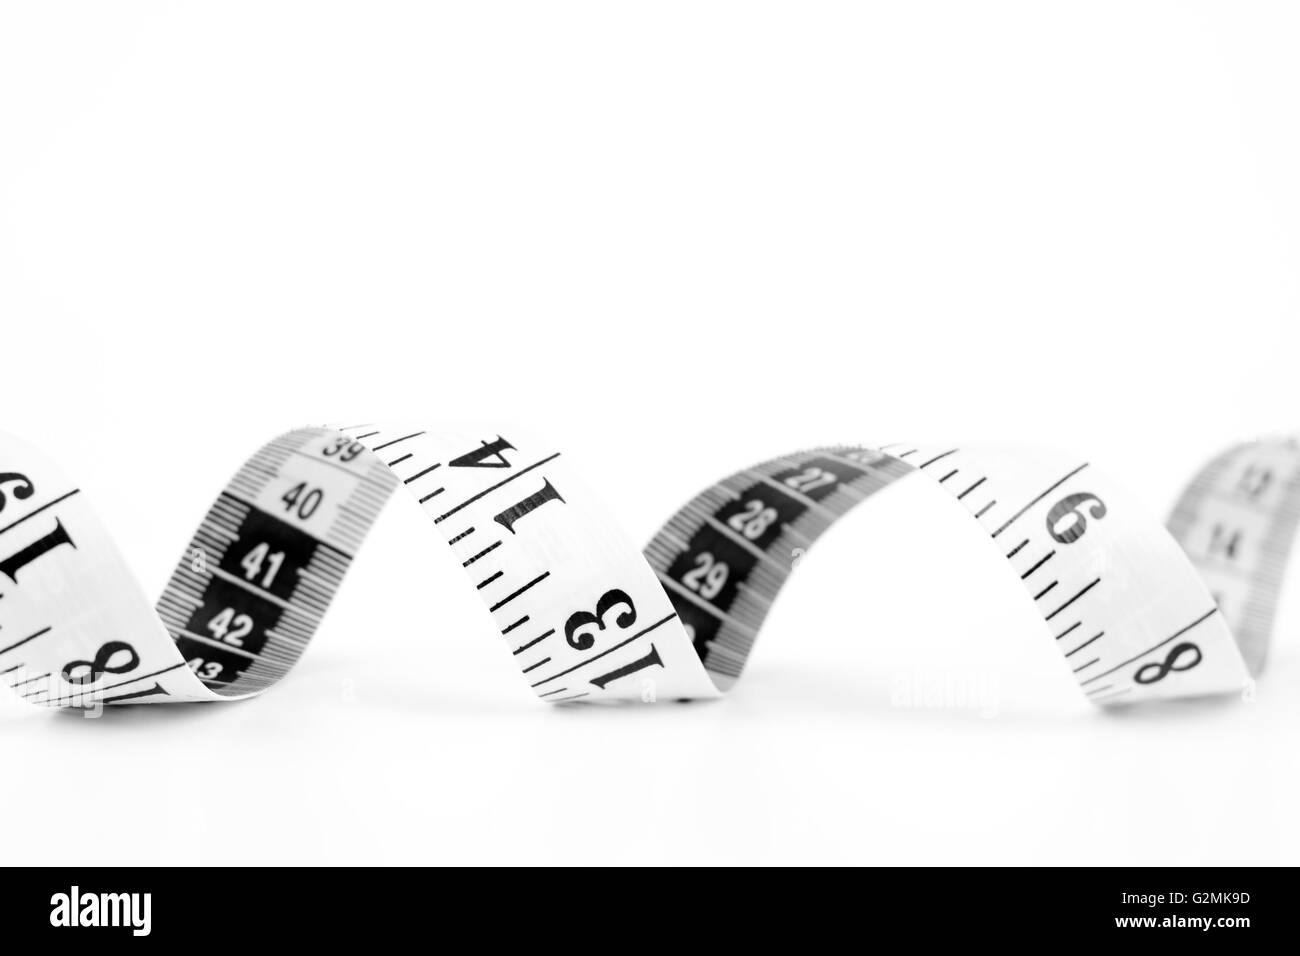 meter measuring tool white with black scale - Stock Image